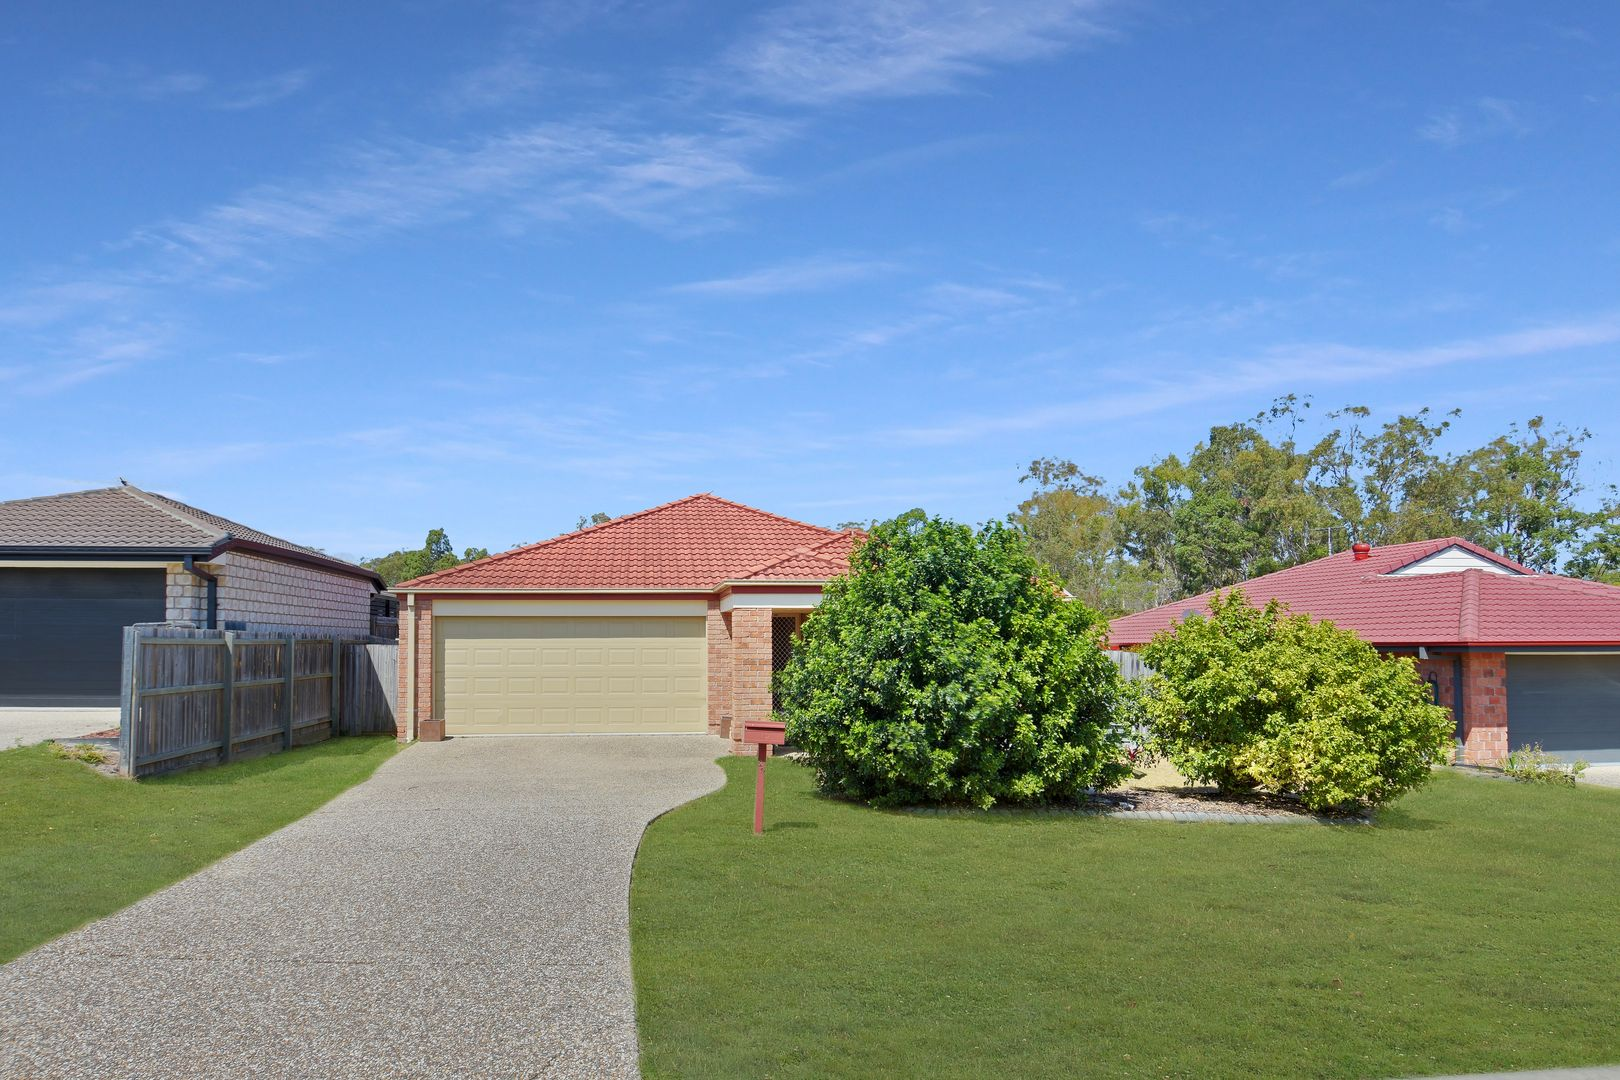 29 Lamberth Road East, Heritage Park QLD 4118, Image 0